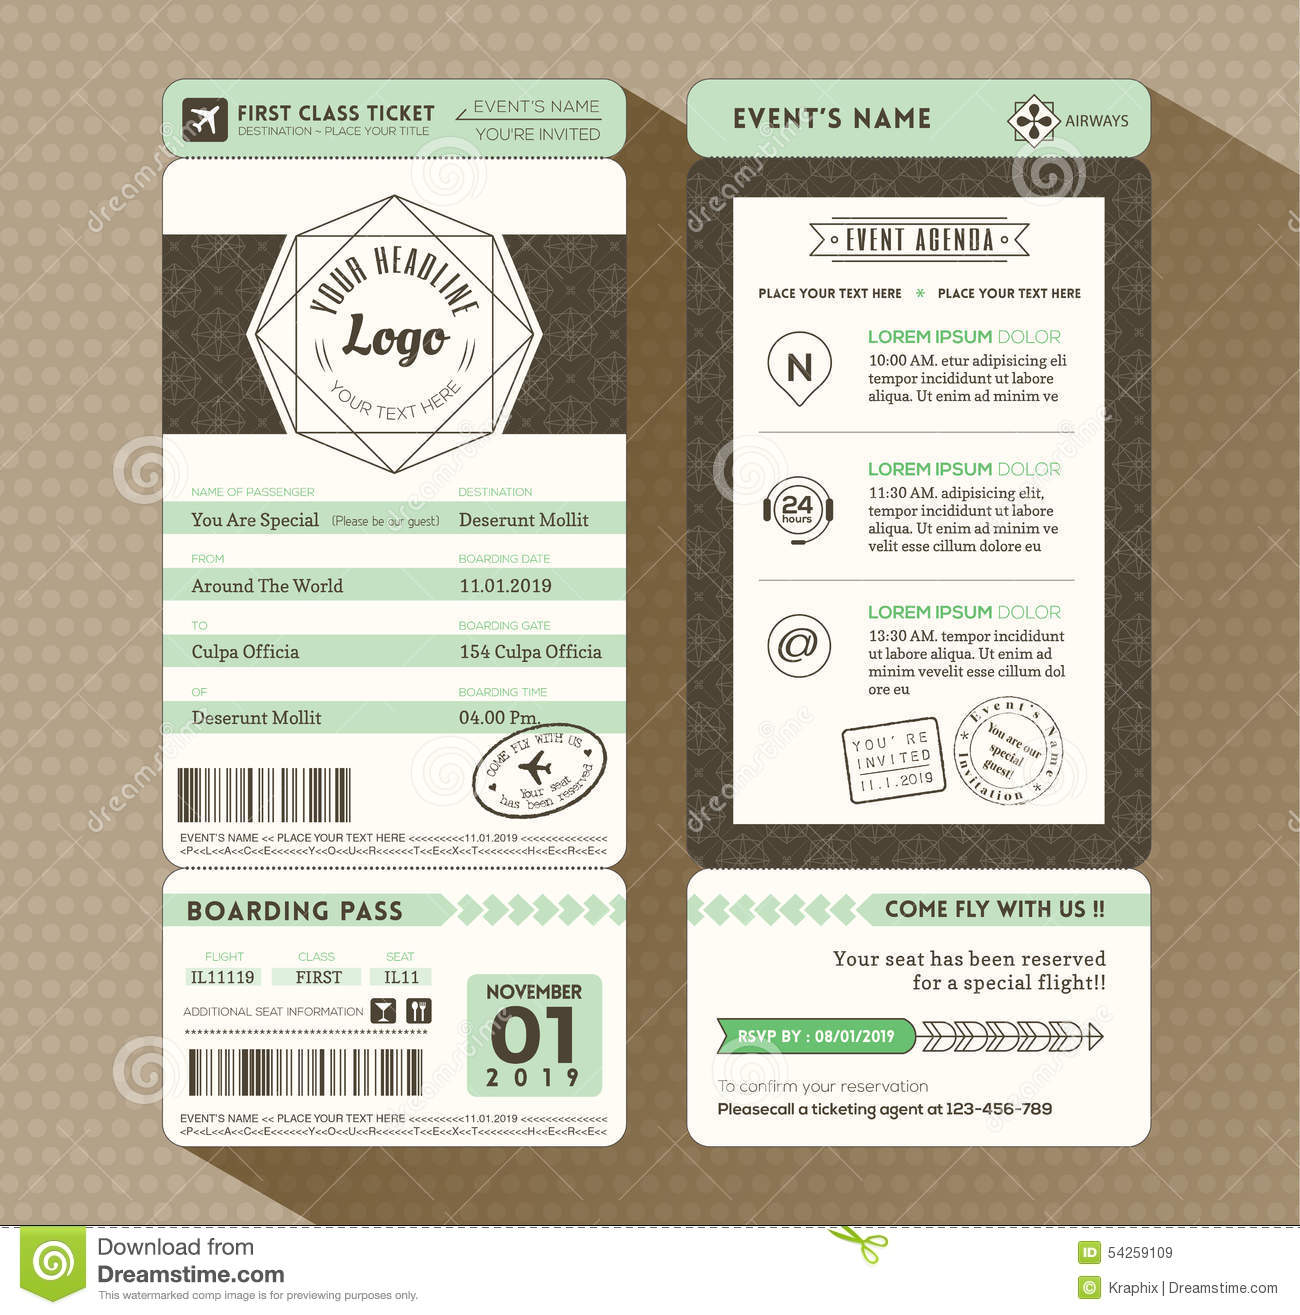 Hipster Design Boarding Pass Ticket Event Invitation Stock